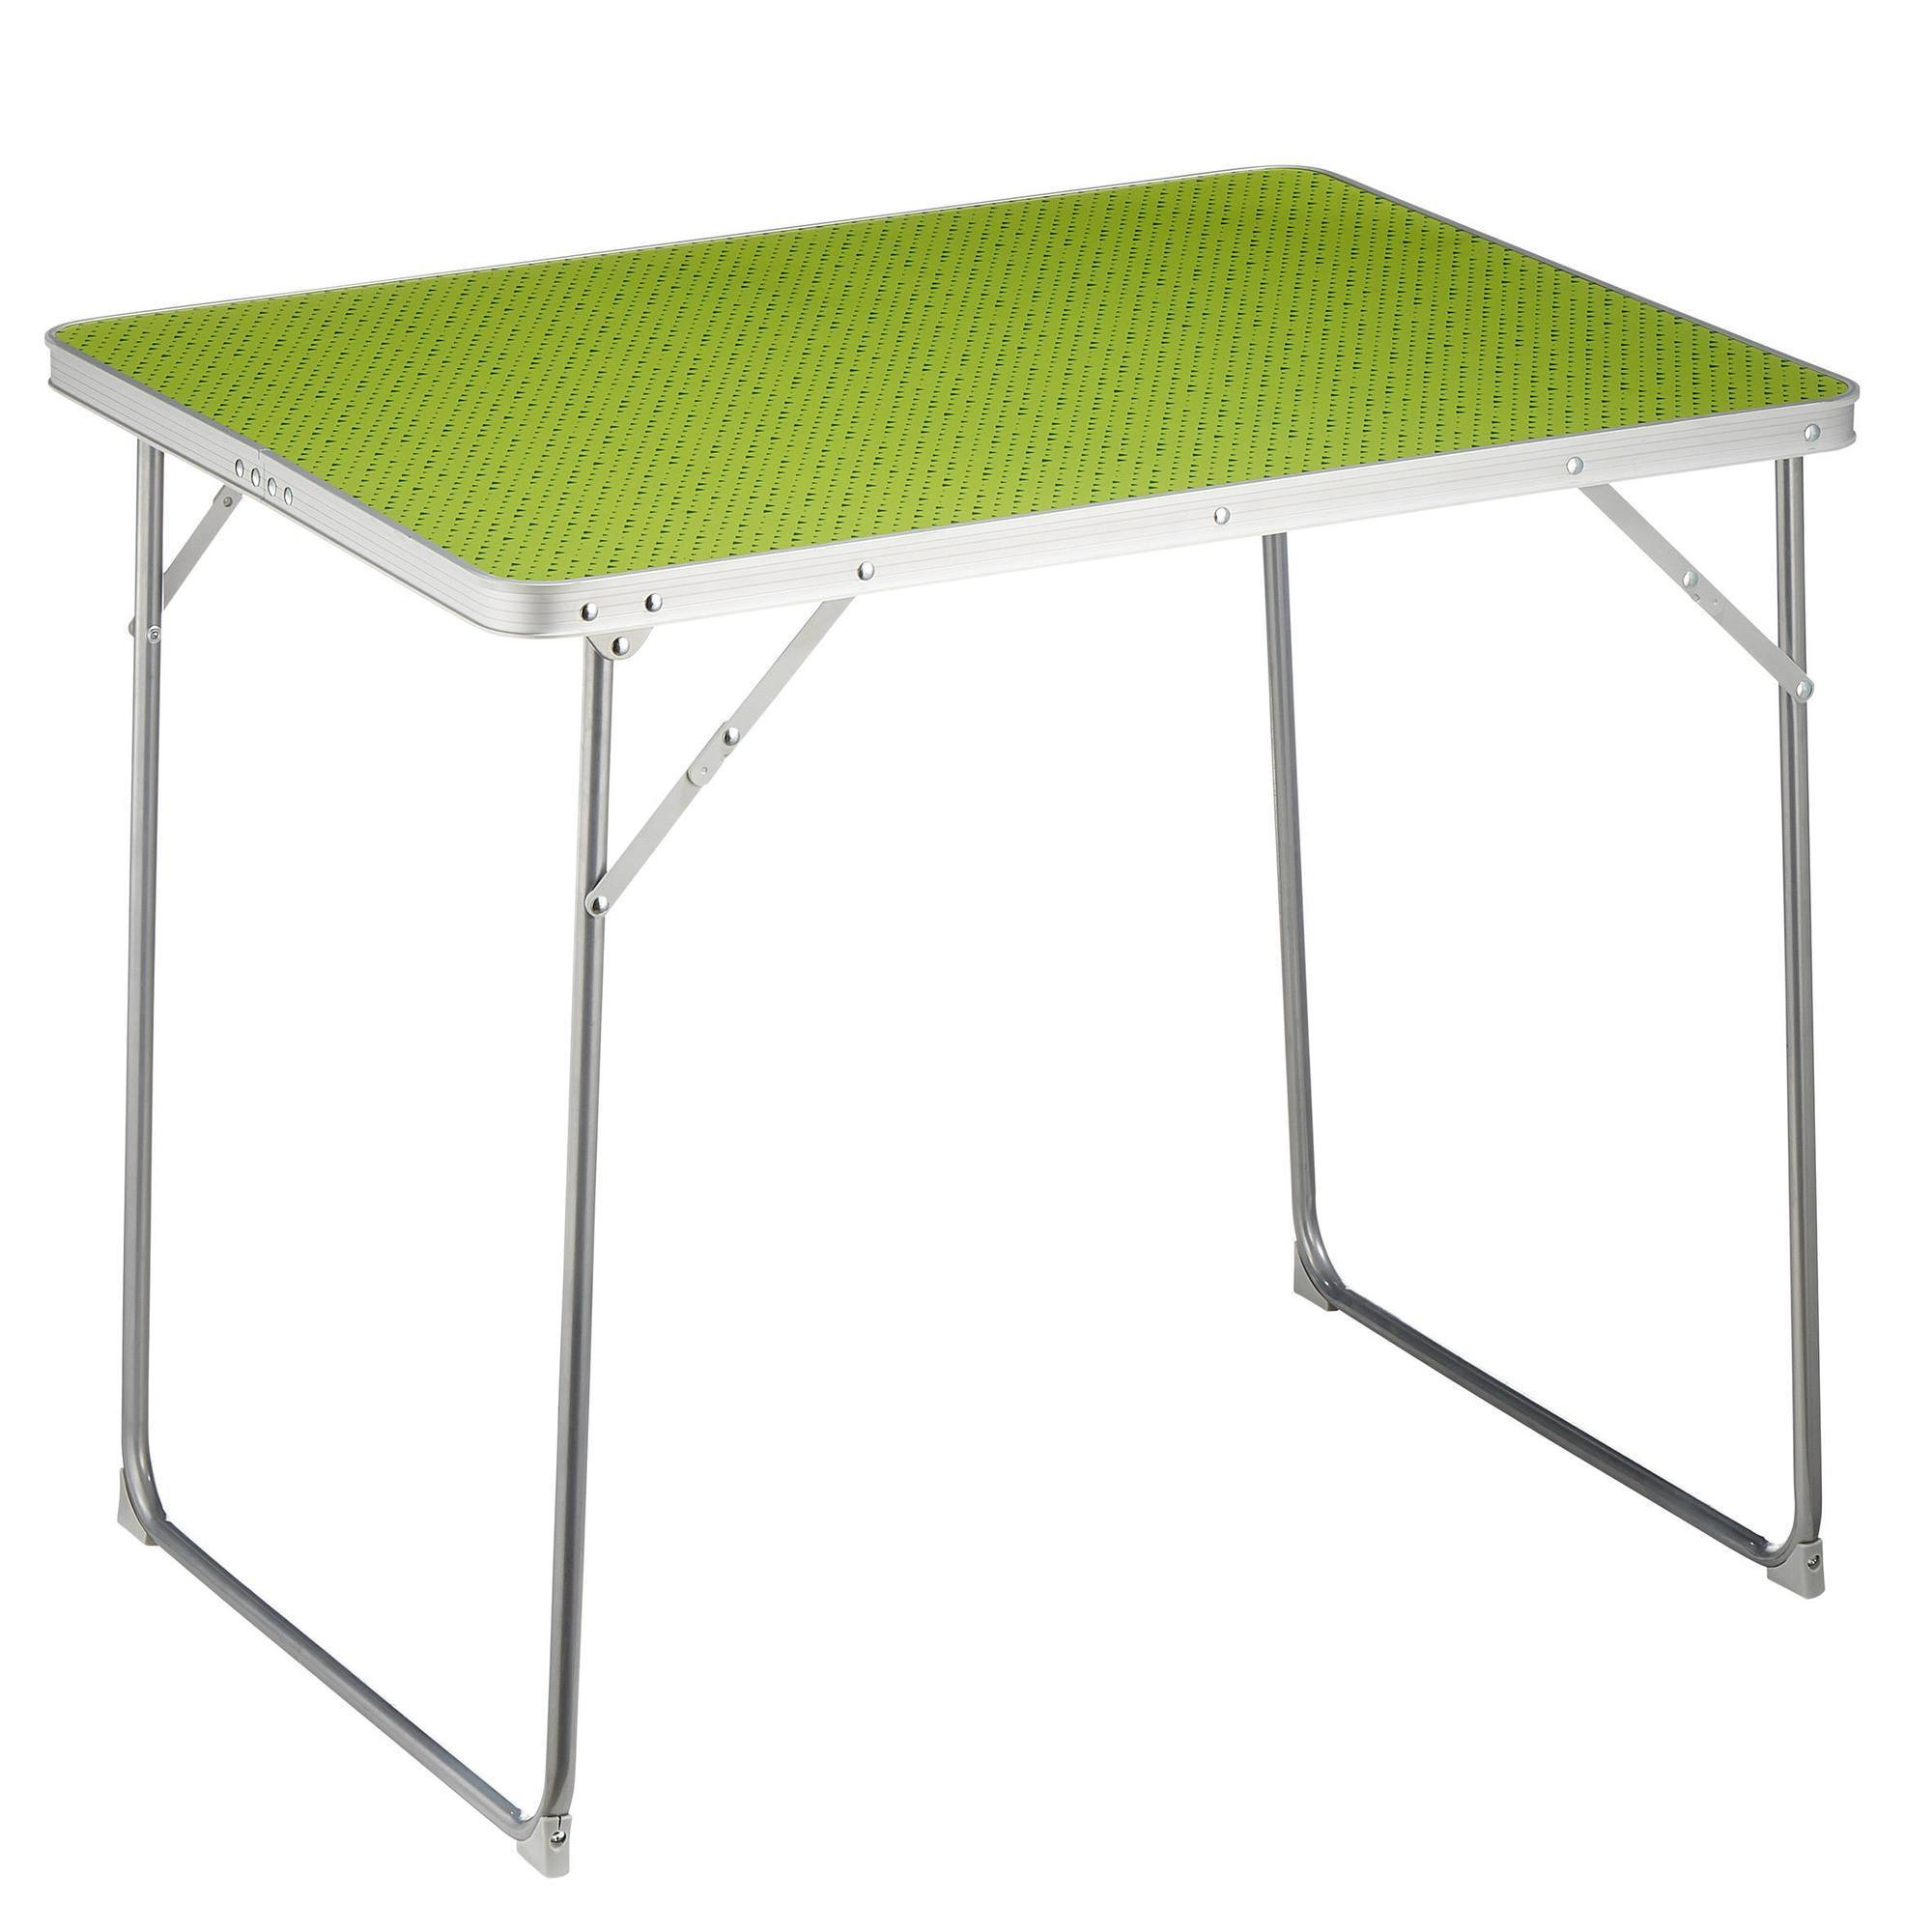 Mobilier camping table 4 personnes vert